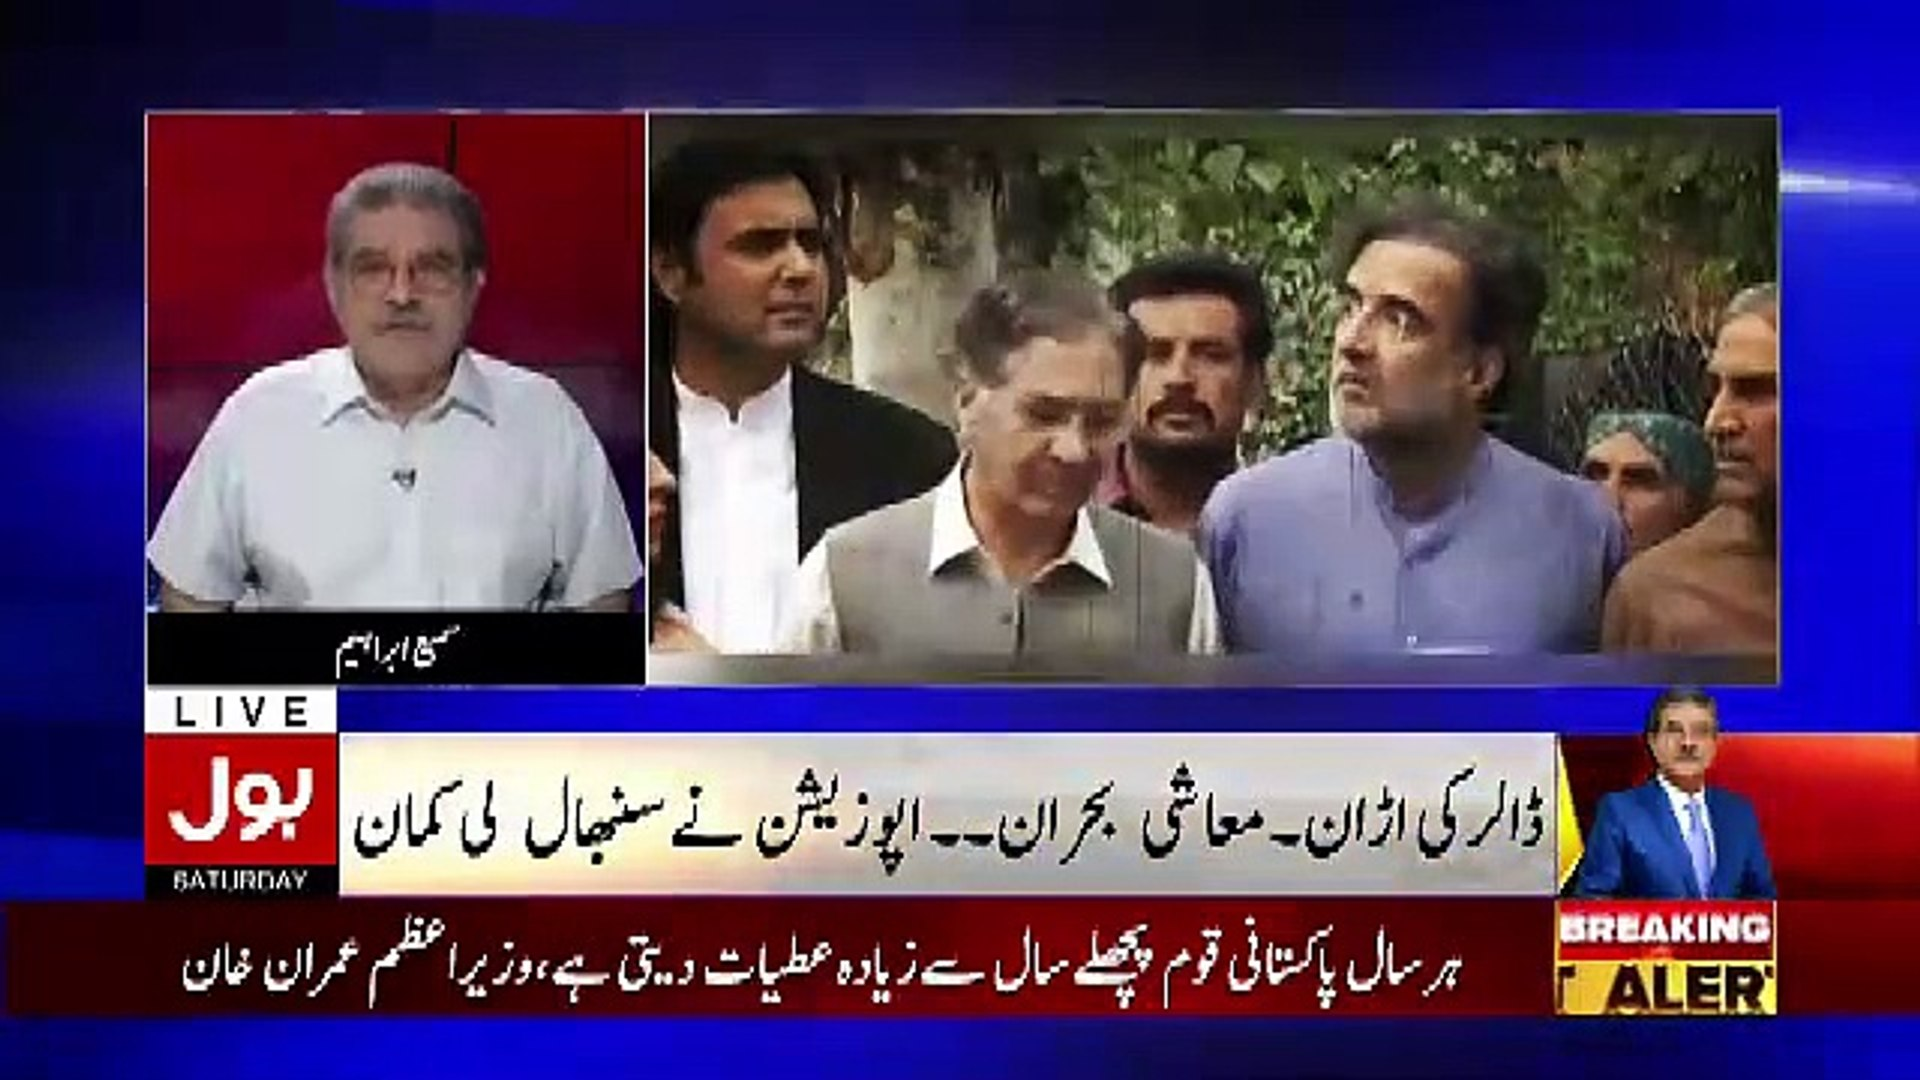 Sami Ibrahim Blast On Media For Only Covering Qamar Zaman Kaira's Son Death And Not The Other K